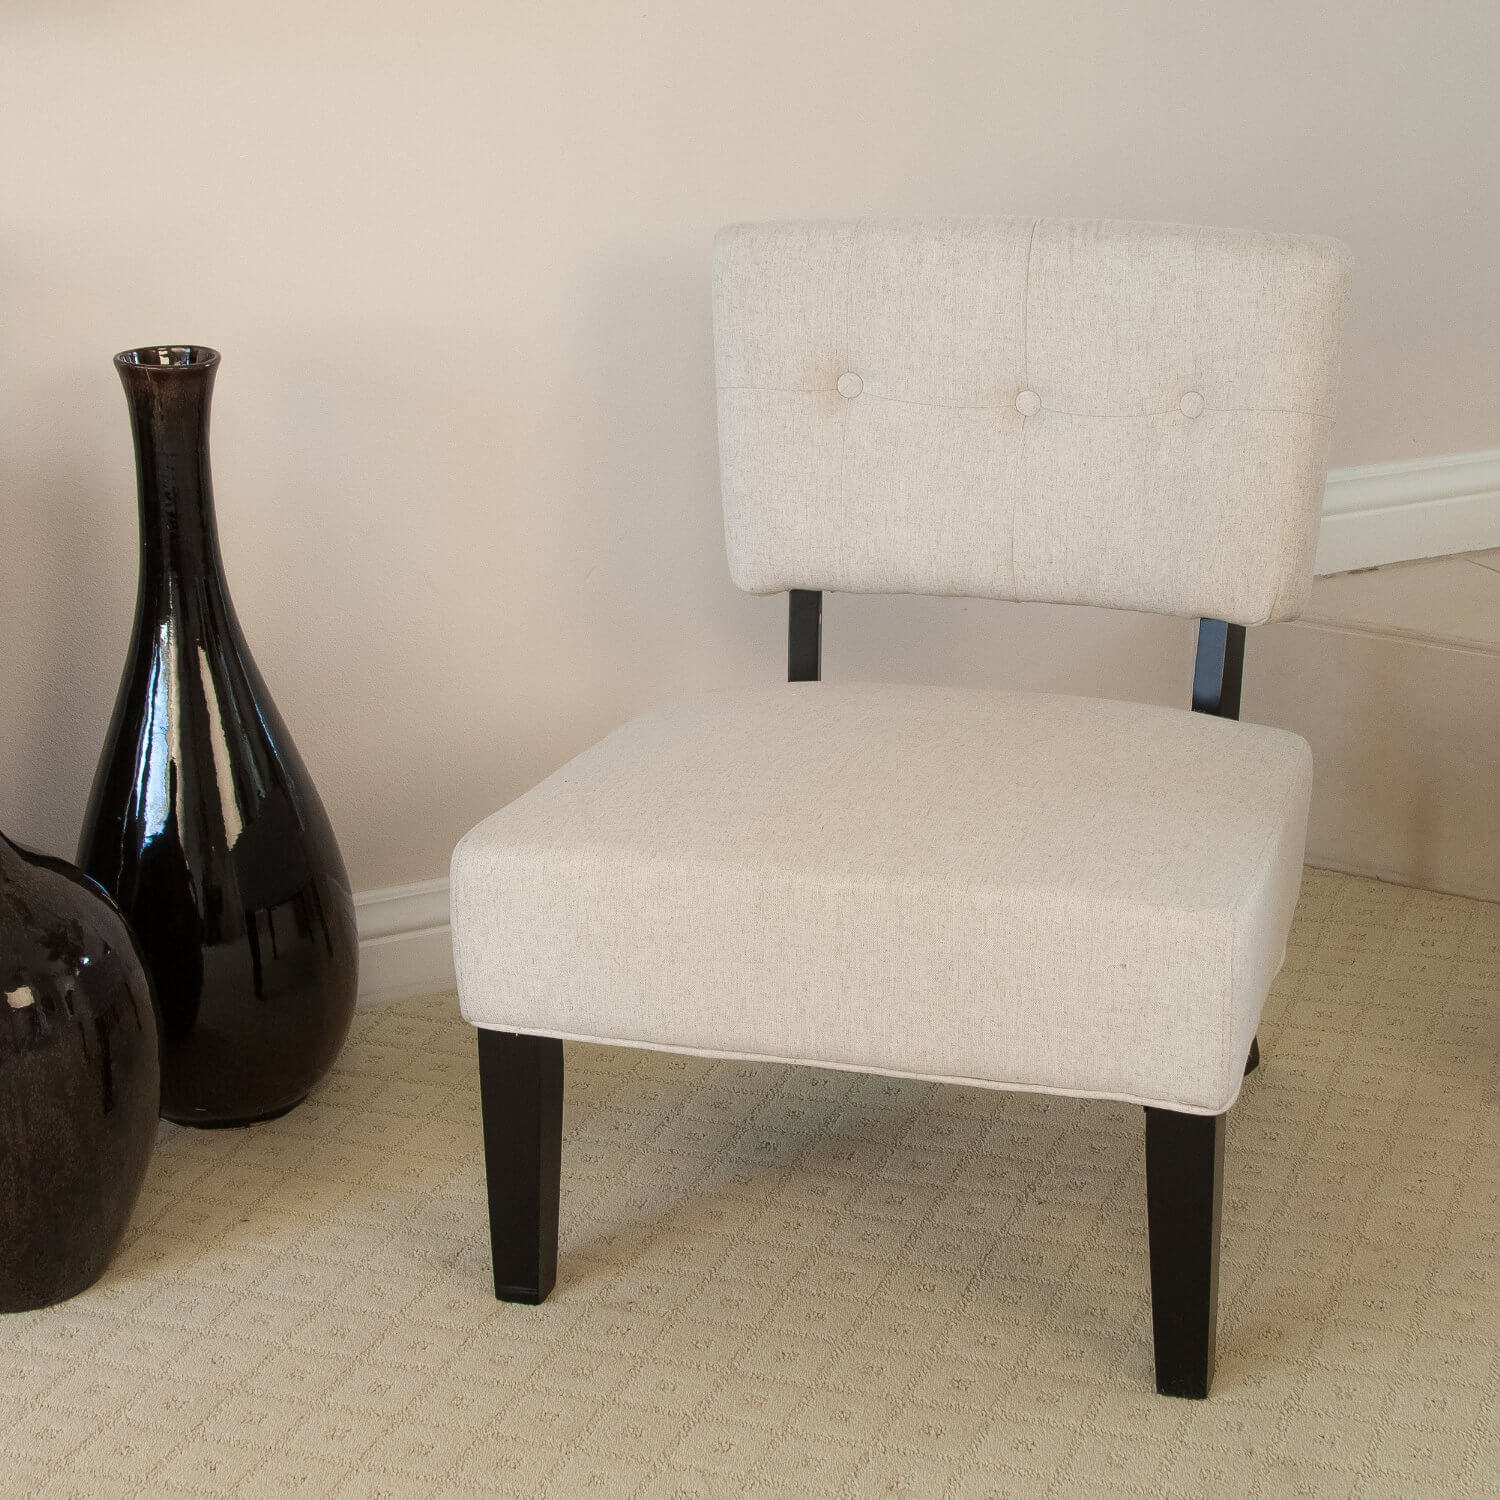 This is a simple, yet elegant accent chair that lightens up a darker room motif (thanks to the chocolate wooden legs) or fits in with lighter furniture